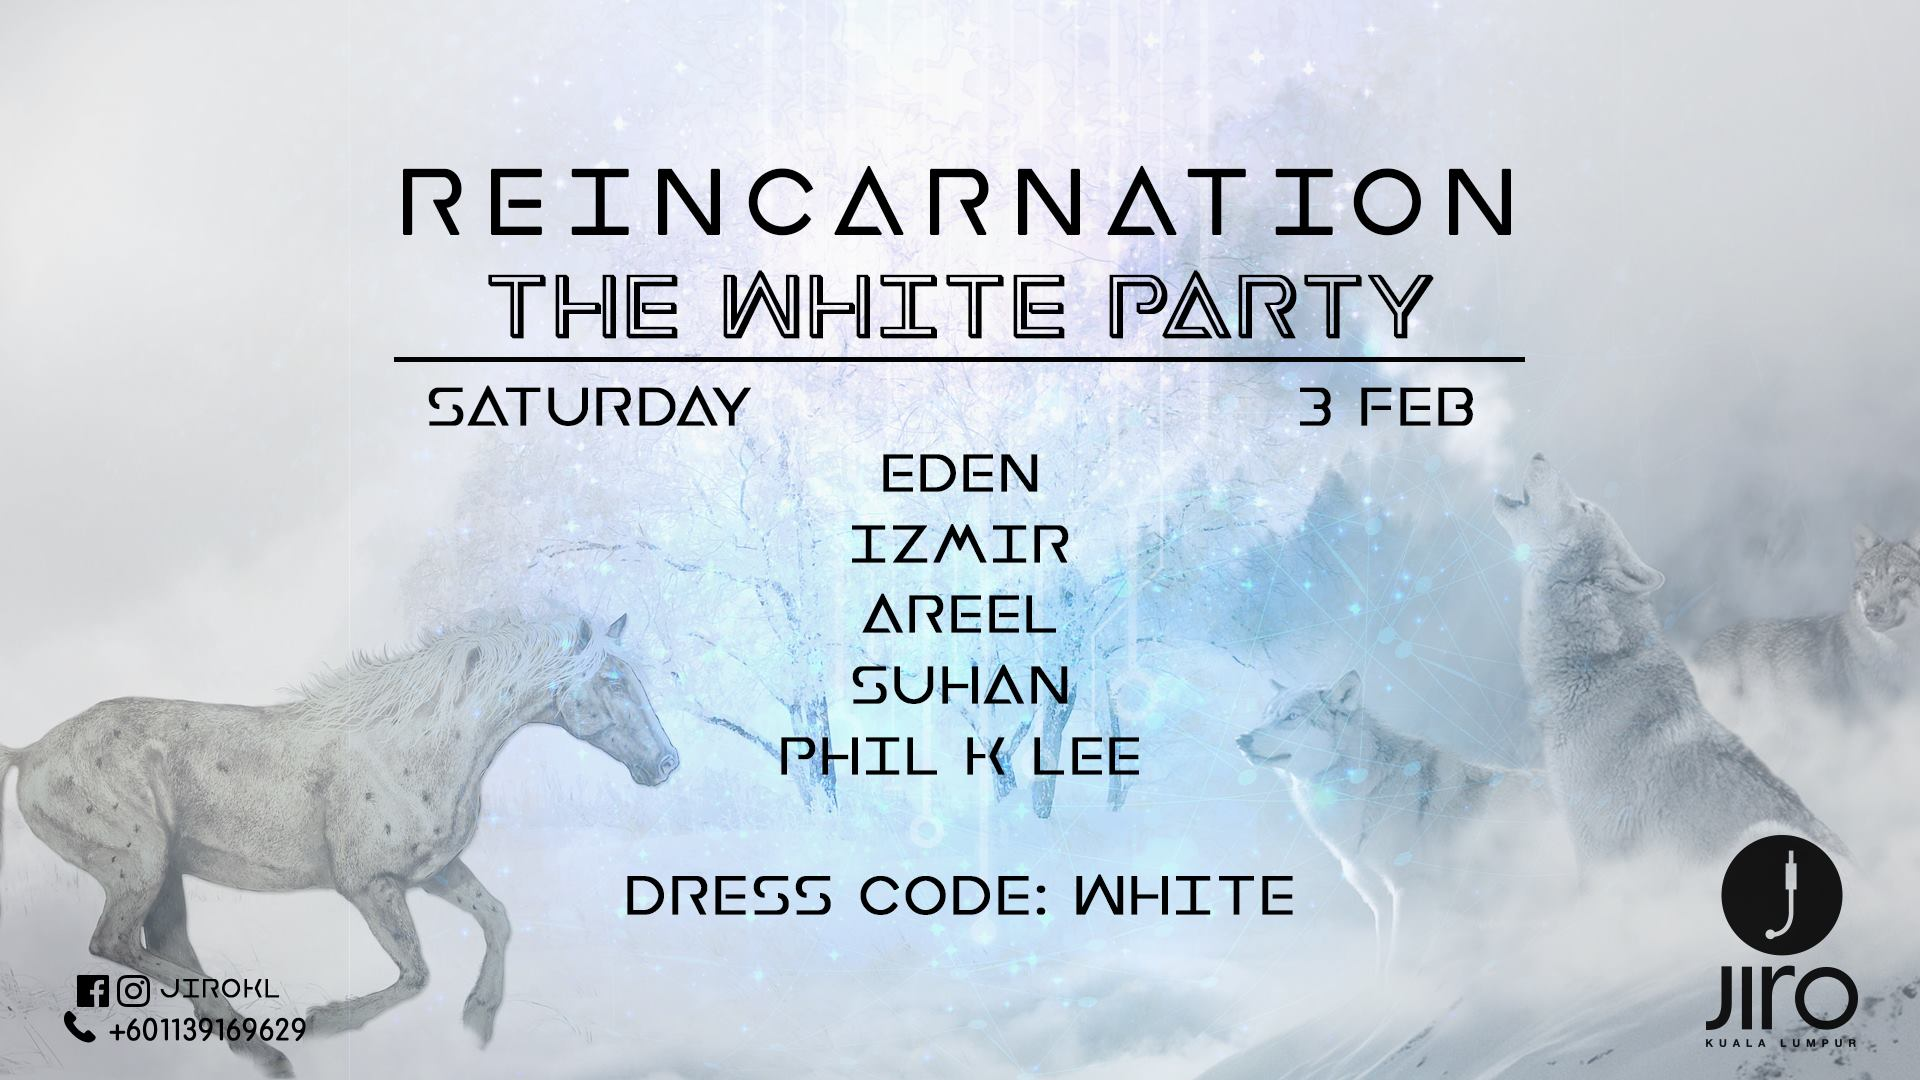 FEBRUARY 3 : Jiro KL presents Reincarnation: The White Party